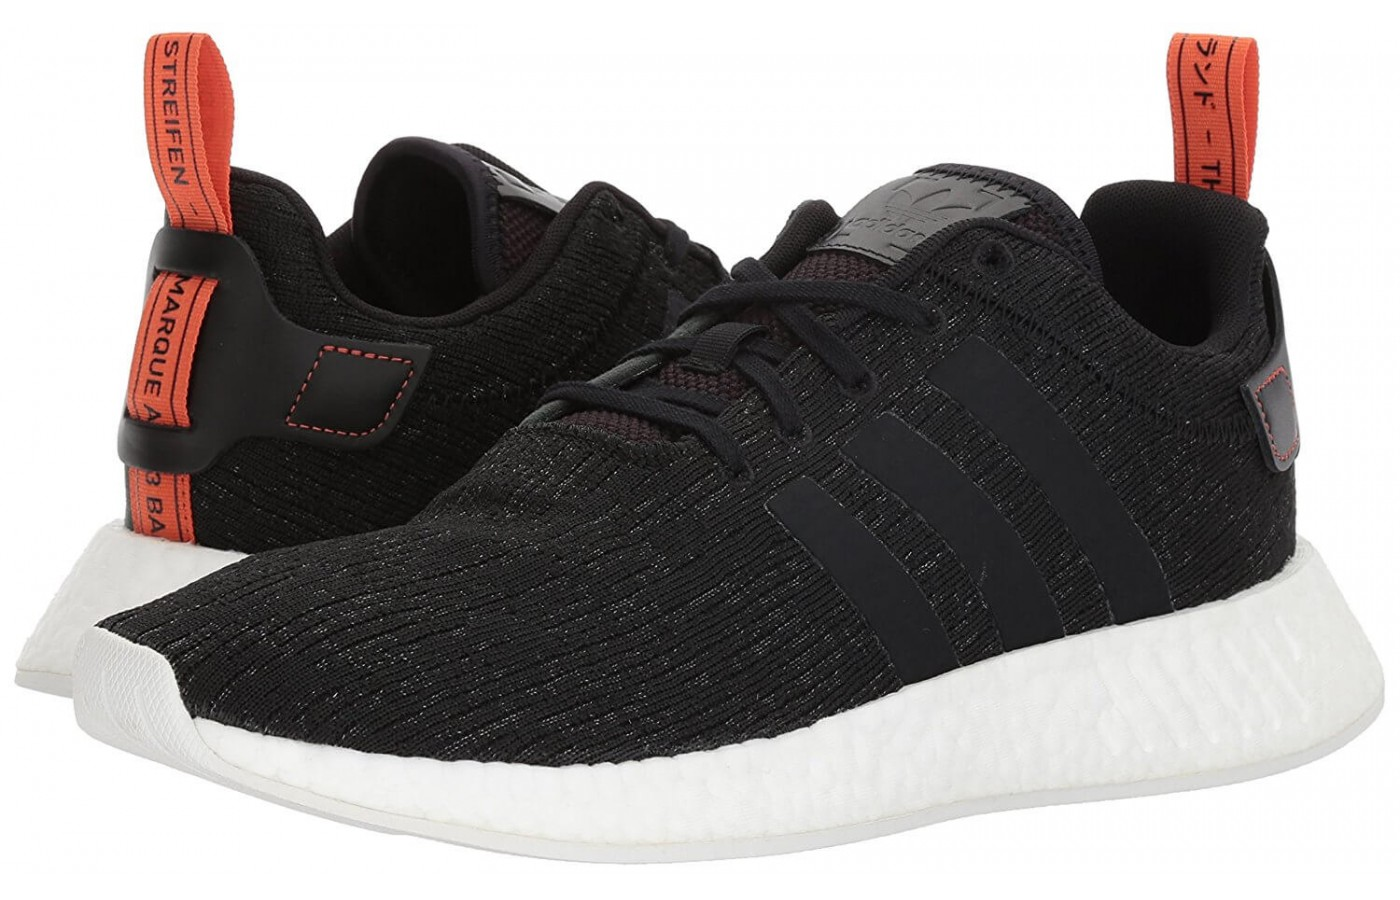 The Adidas NMD R2 is lightweight and responsive